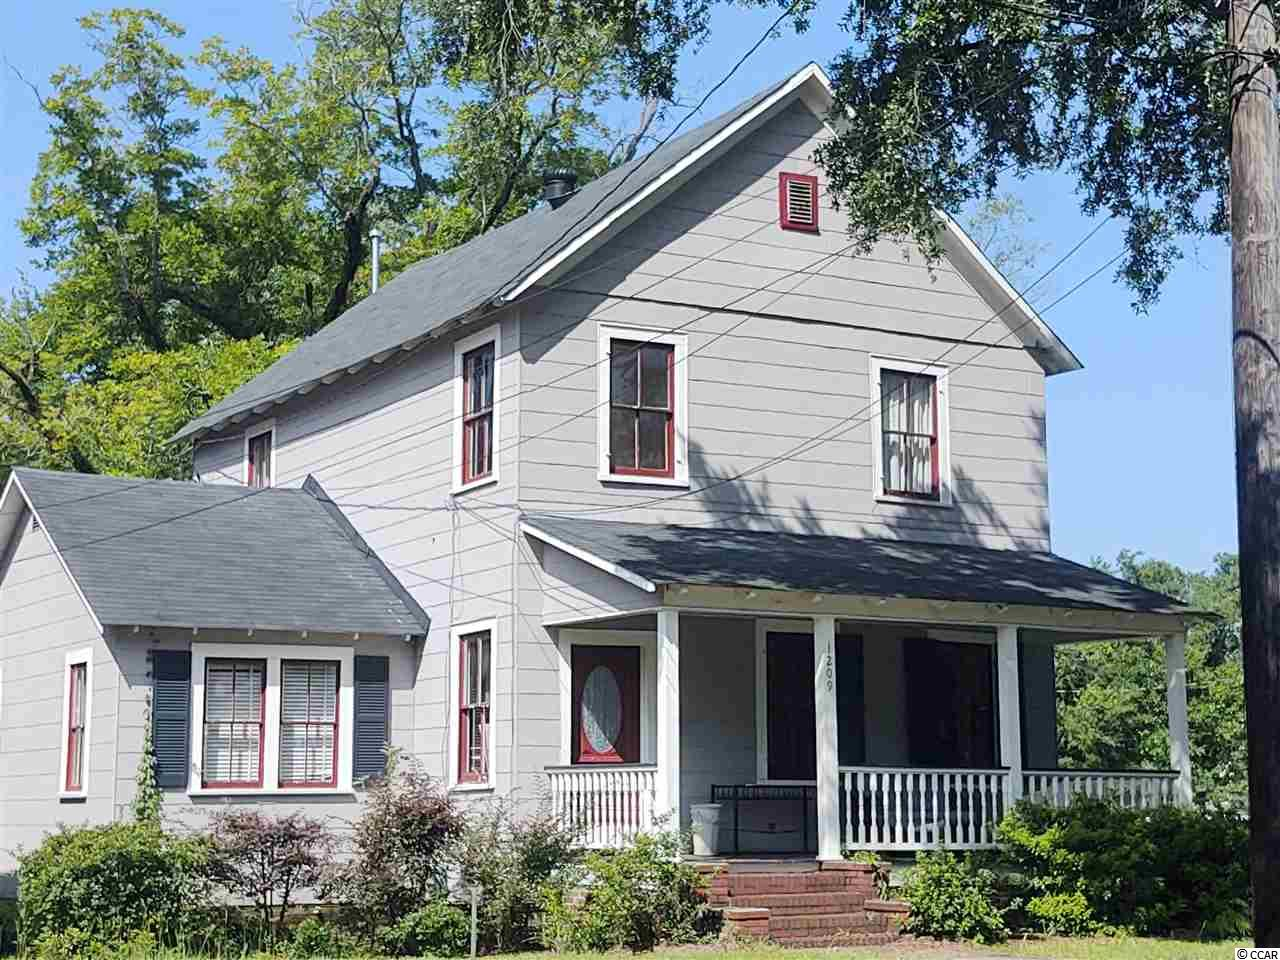 Welcome to 1209 Prince street located in the historic Walker Subdivision in Downtown Georgetown SC!  This large home was renovated within the past few years to include new wiring, plumbing, roof, 2 new HVAC's and more! Upon entering the front door, a gracious entry welcomes you into the home.    The first floor features large rooms with plenty of sunlight!  Beautiful hardwood floors take you from the entry, to the formal living and dining rooms, a den, and a first floor bedroom and bath!  Upstairs you will find 3 more bedrooms and full bath.   The kitchen is a large room with plenty of counter and cabinet space and a laundry/utility room off the kitchen. High ceilings are charming feature with a few of the ceilings in the home being beadboard. This home is located within strolling distance to the downtown shopping district.  Within a few blocks you will find not only shopping and dining, but  you will also have access to our five rivers via the East Bay Boat landing and kayak launch!   A great weekend home, full time residence, or rental!